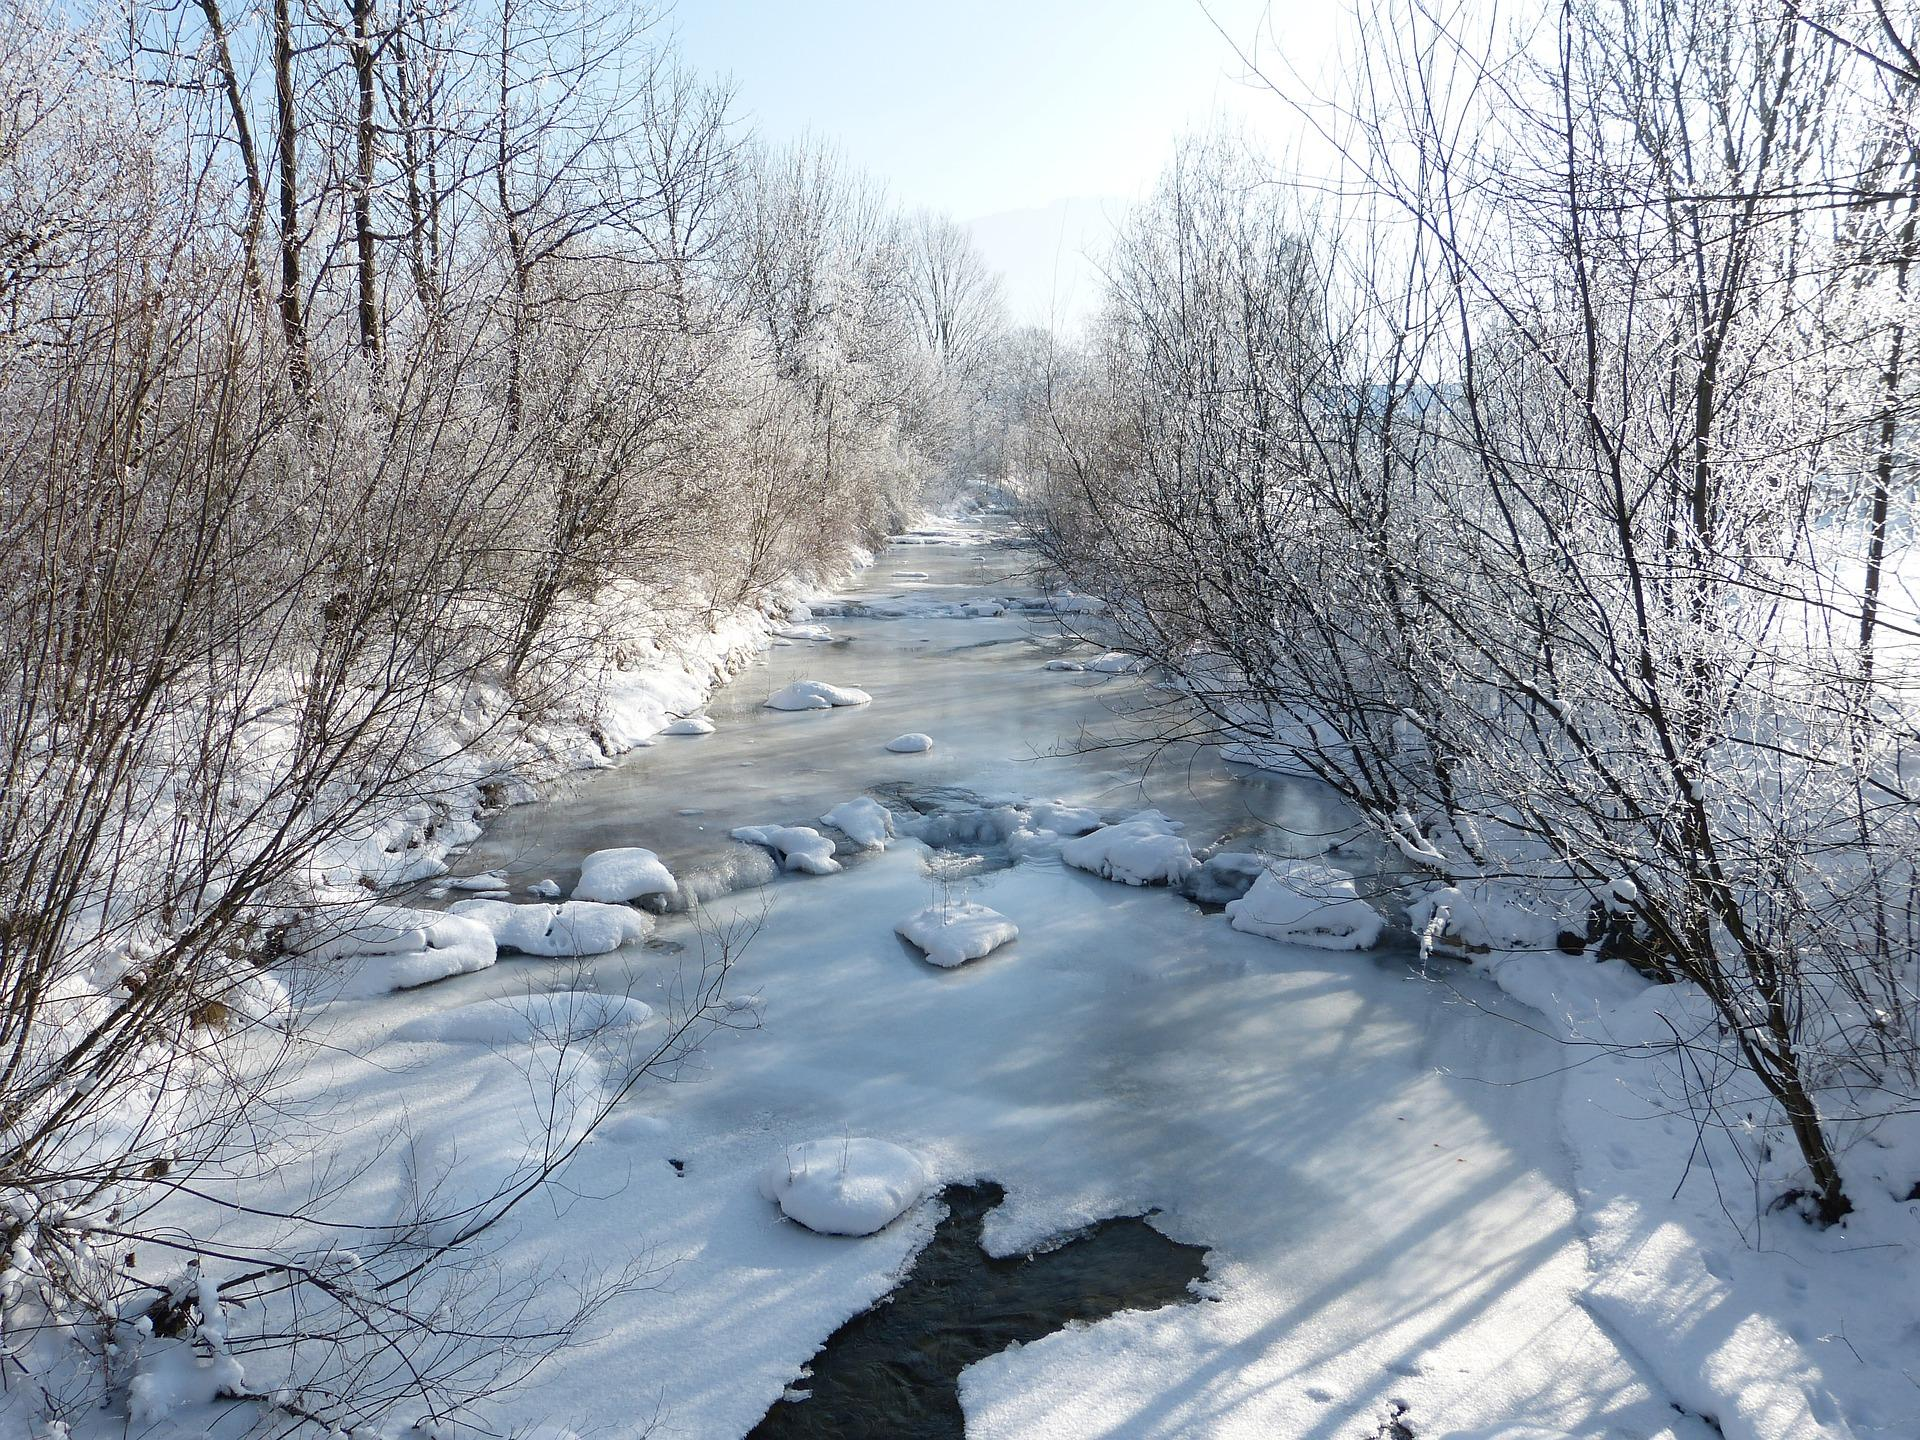 Global warming behind river ice cover loss Study